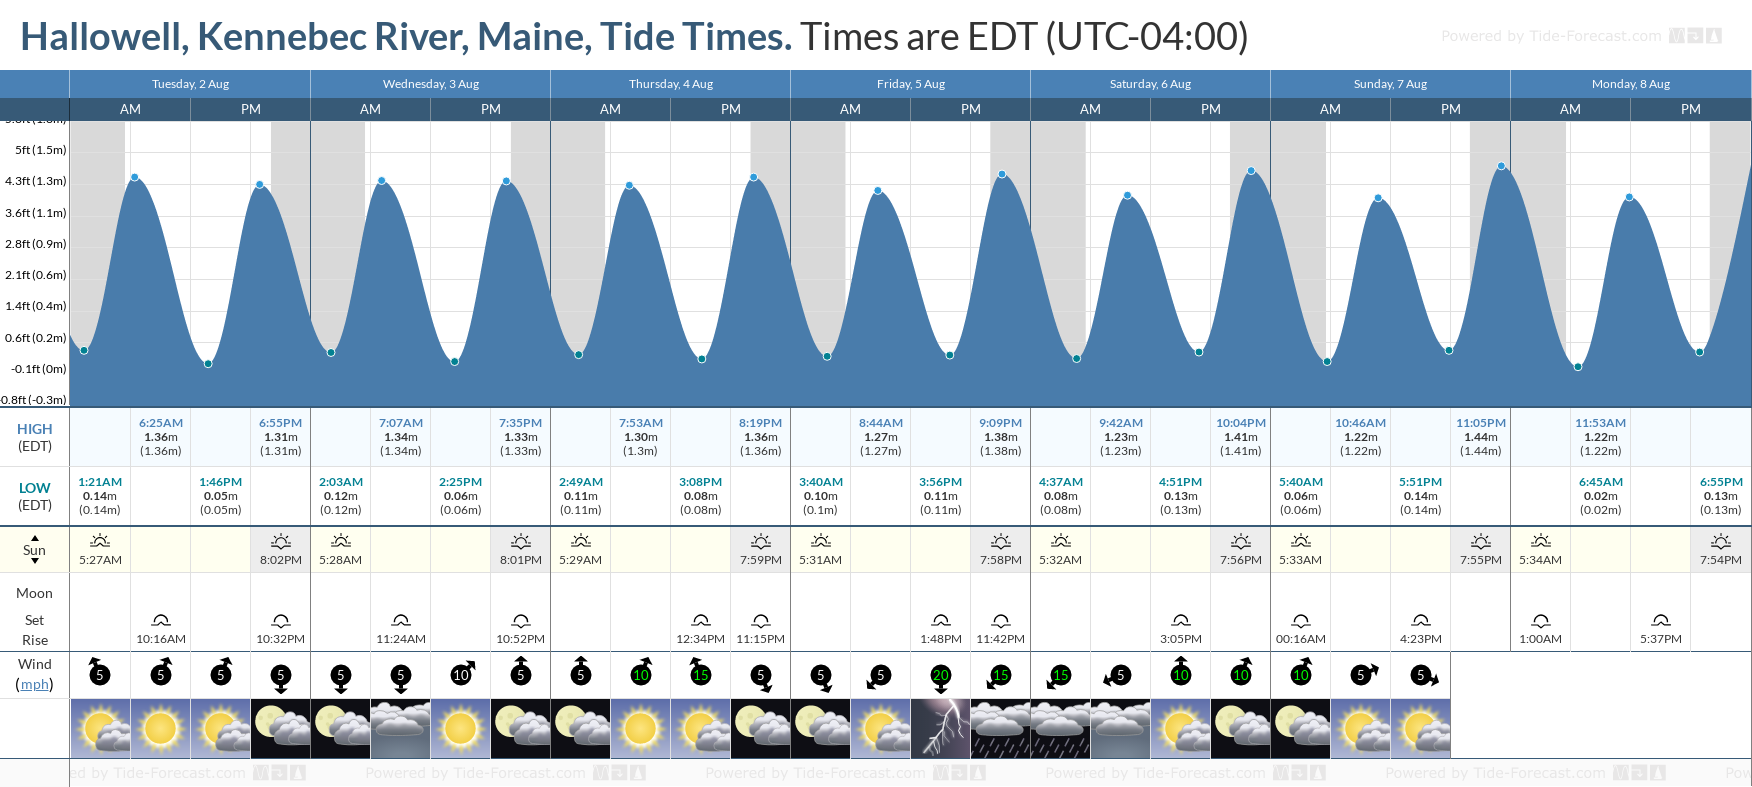 Hallowell, Kennebec River, Maine Tide Chart including high and low tide tide times for the next 7 days